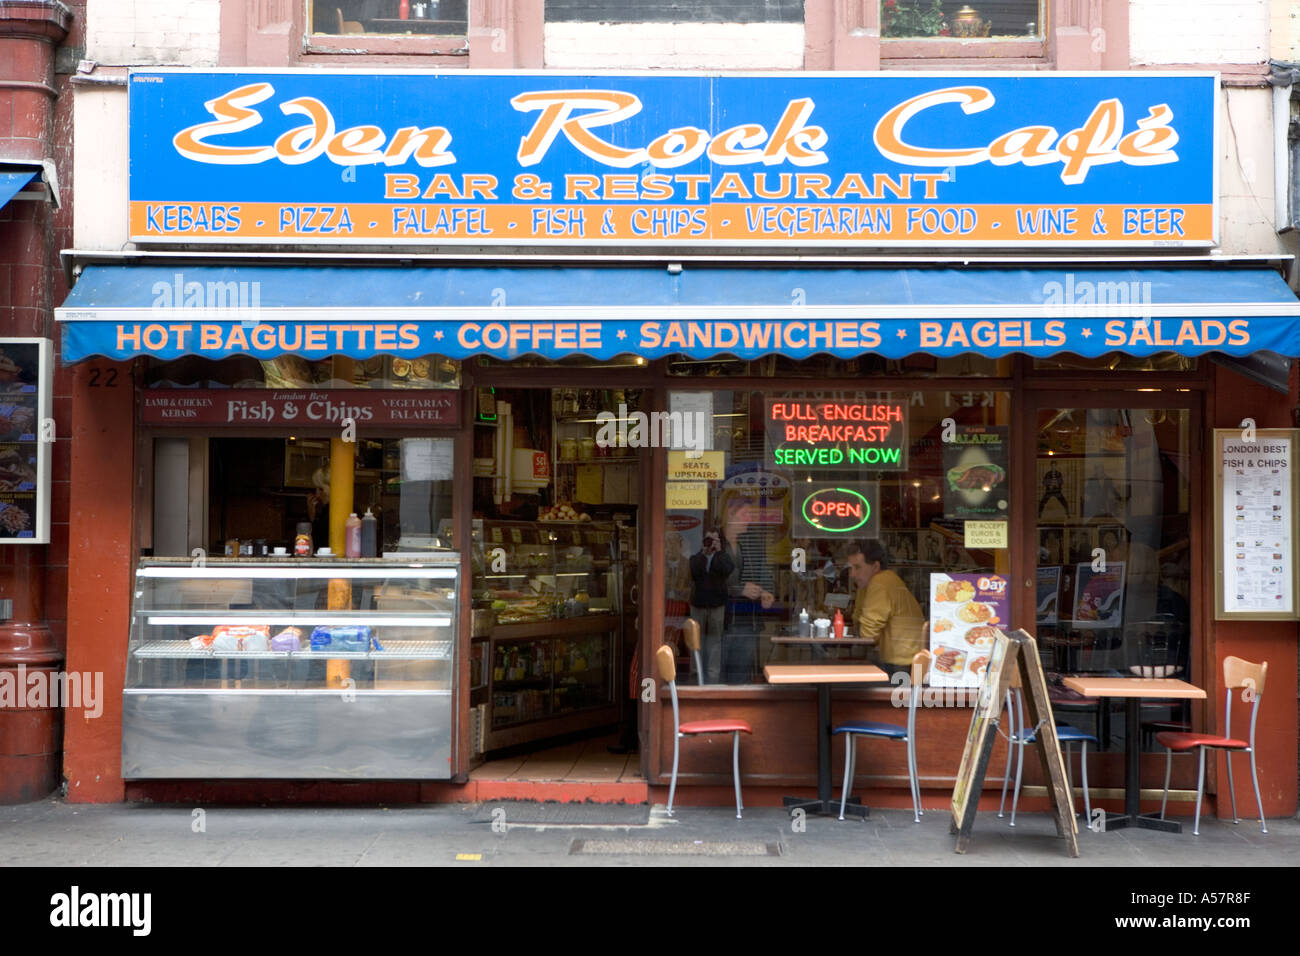 Cafe with diners and full English breakfast neon sign in London England - Stock Image